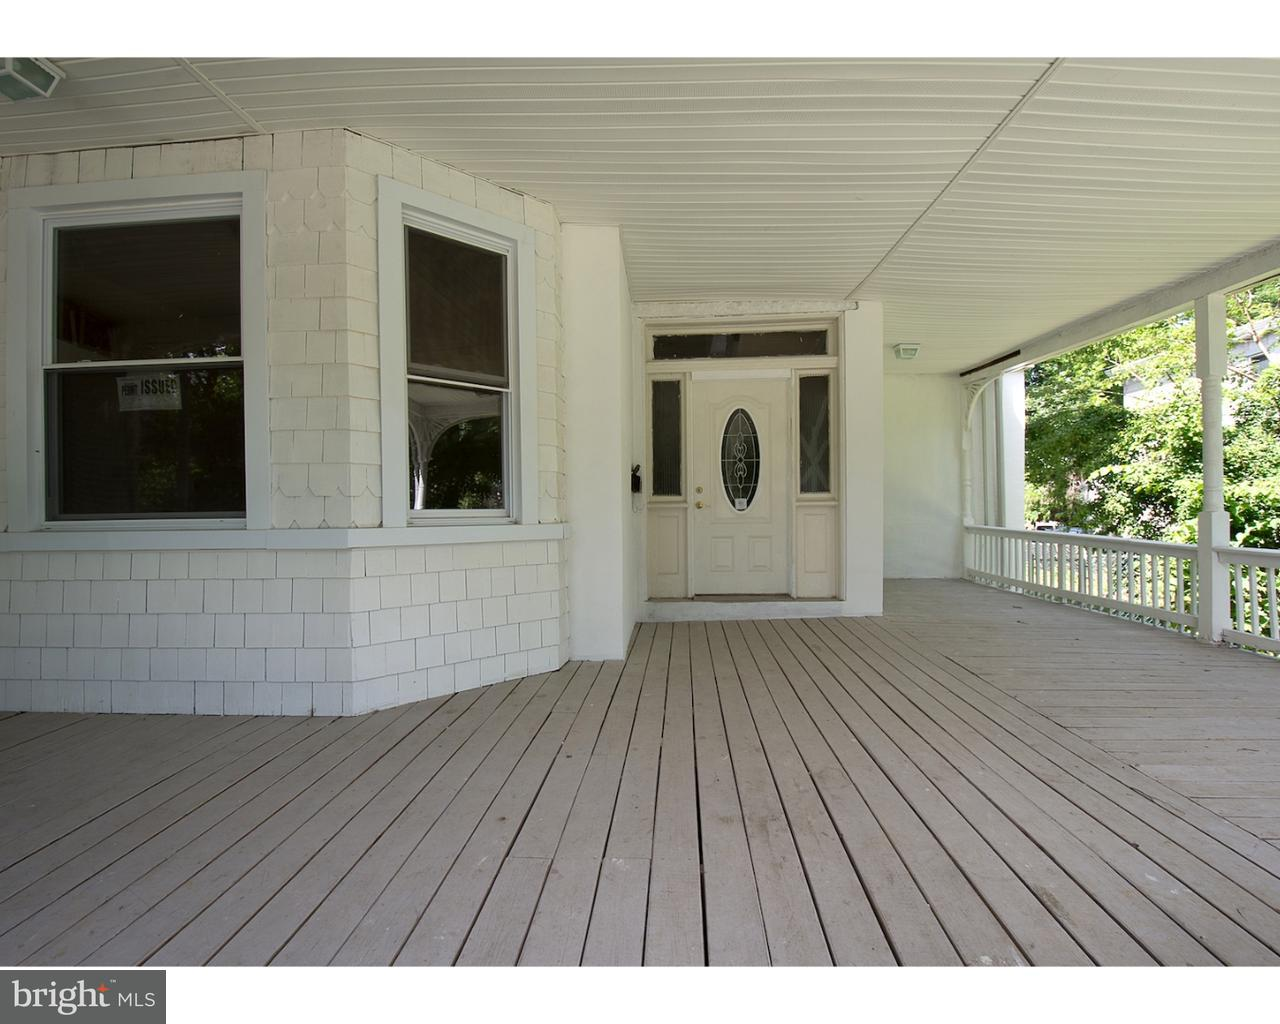 332 SHARON AVE, SHARON HILL - Listed at $204,900, SHARON HILL